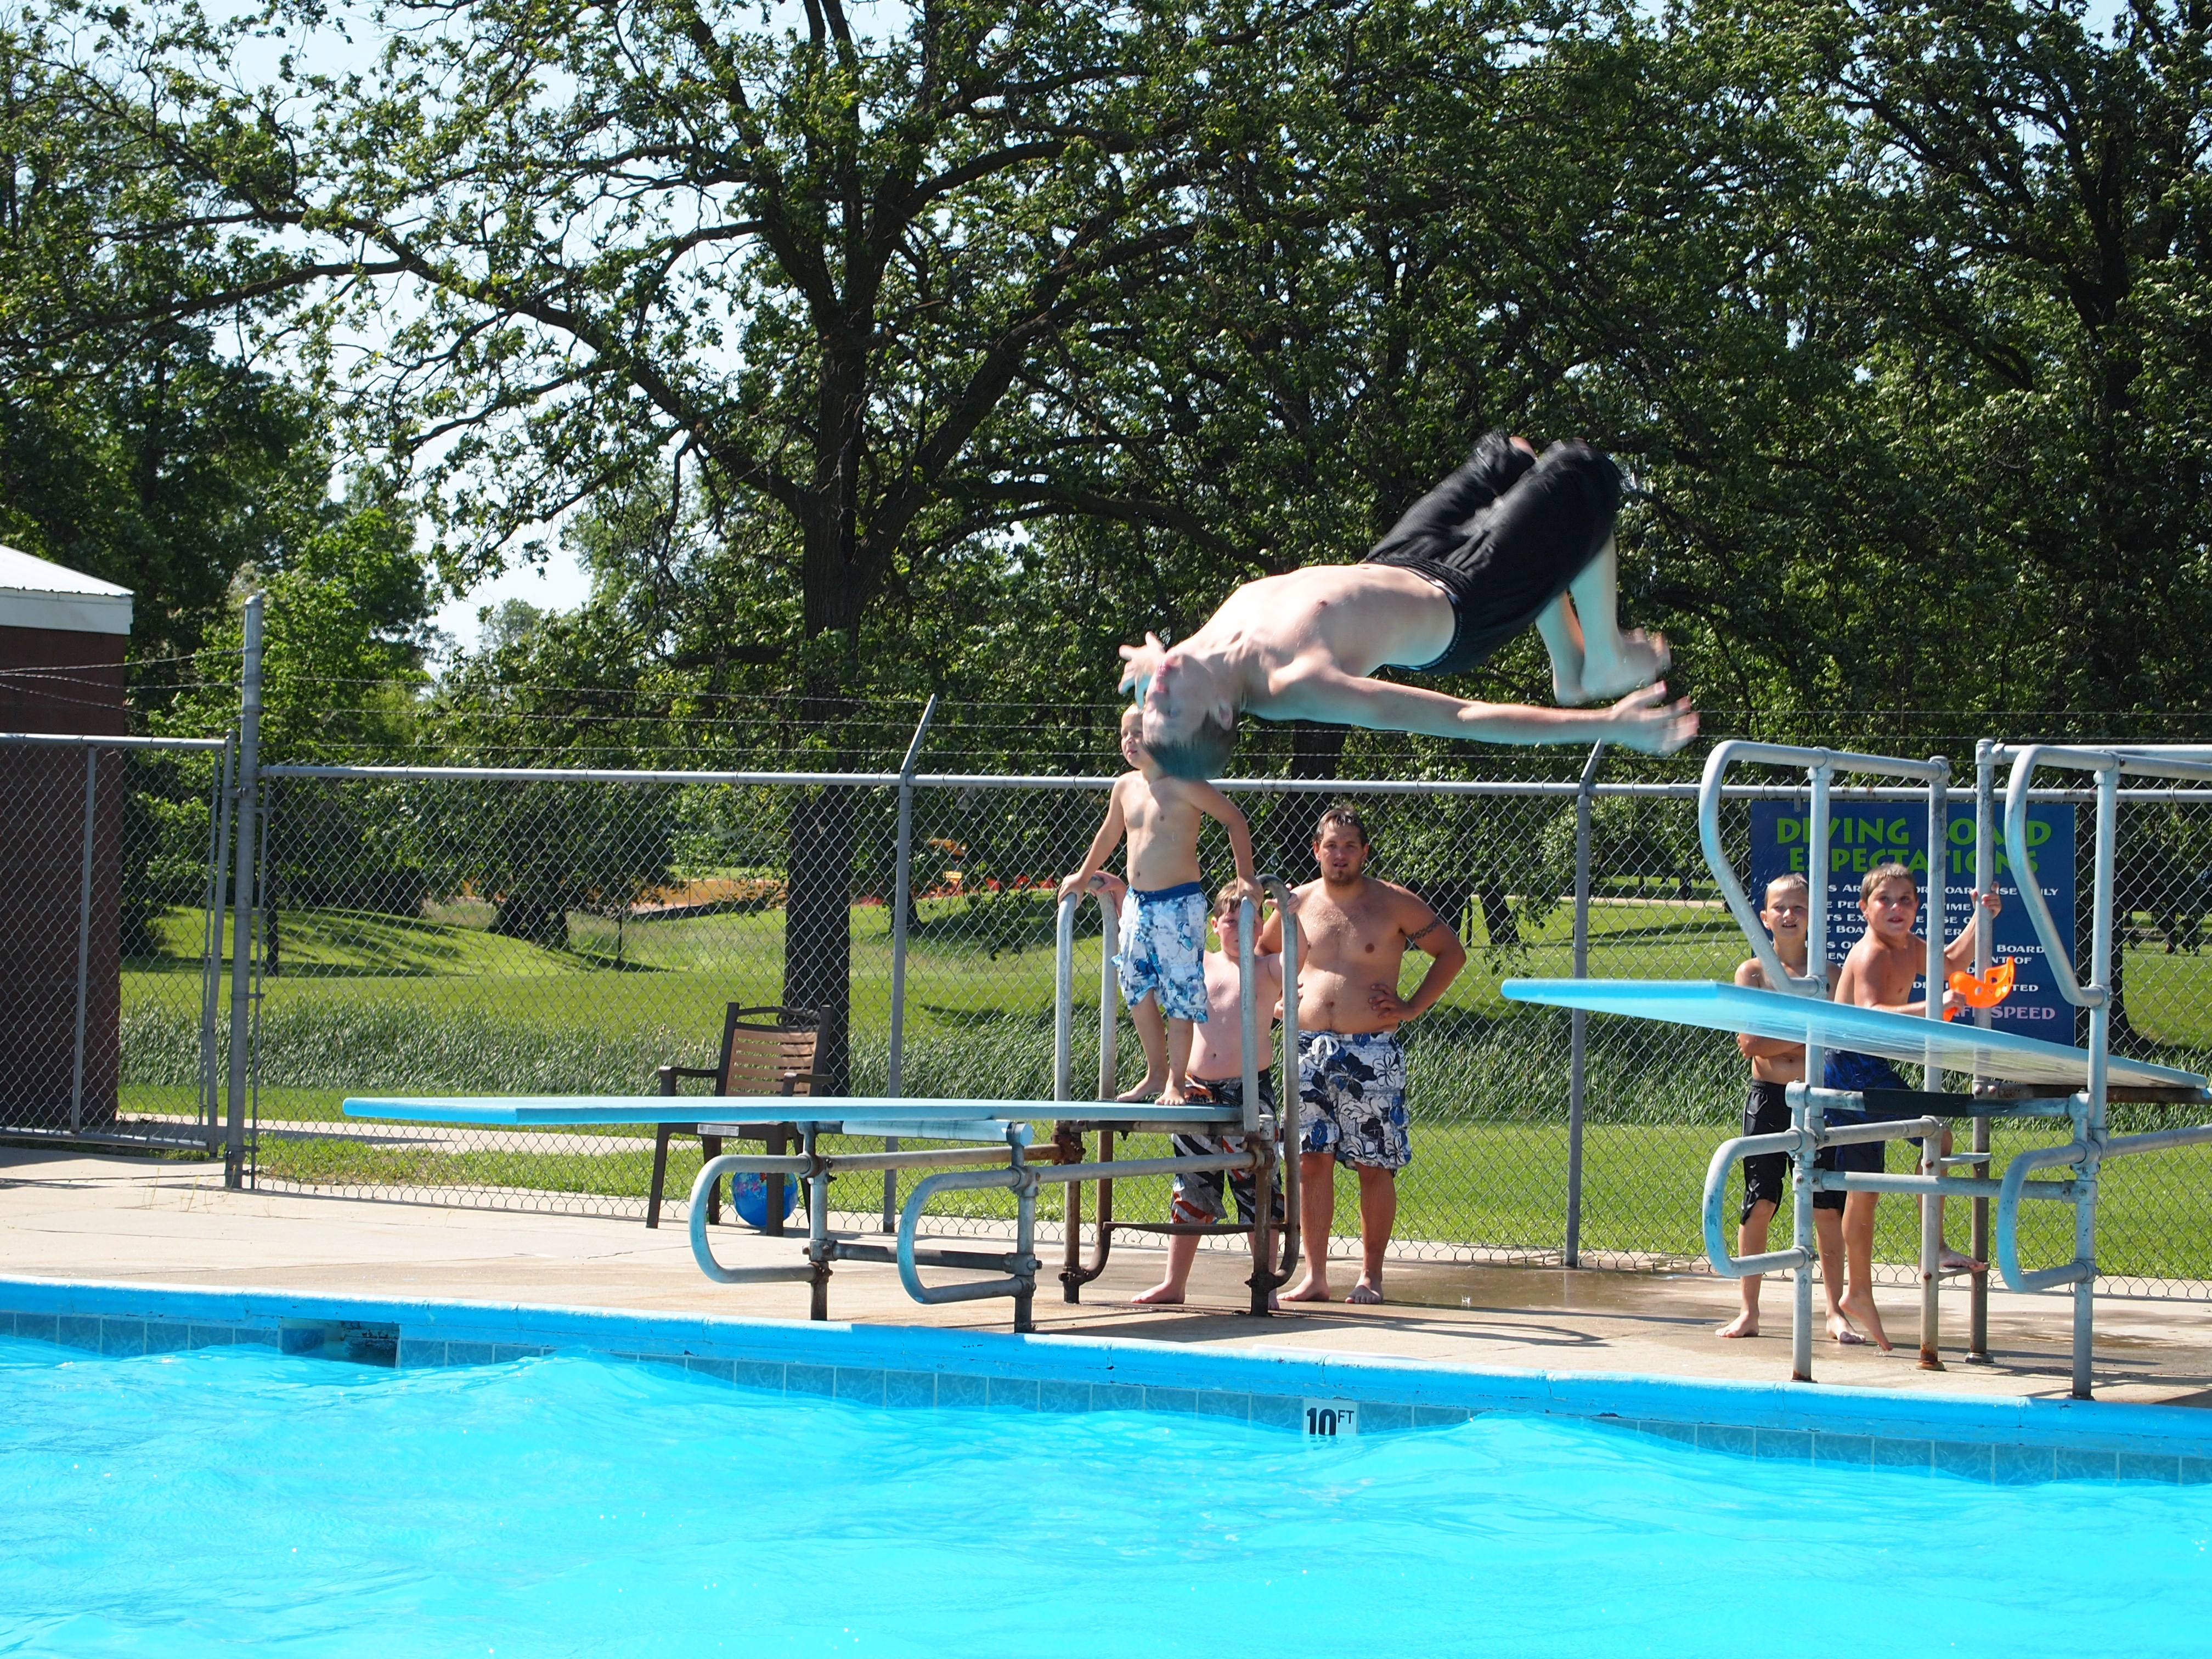 Public Swimming Pools With Diving Boards local attractions - official website of warren, minnesota